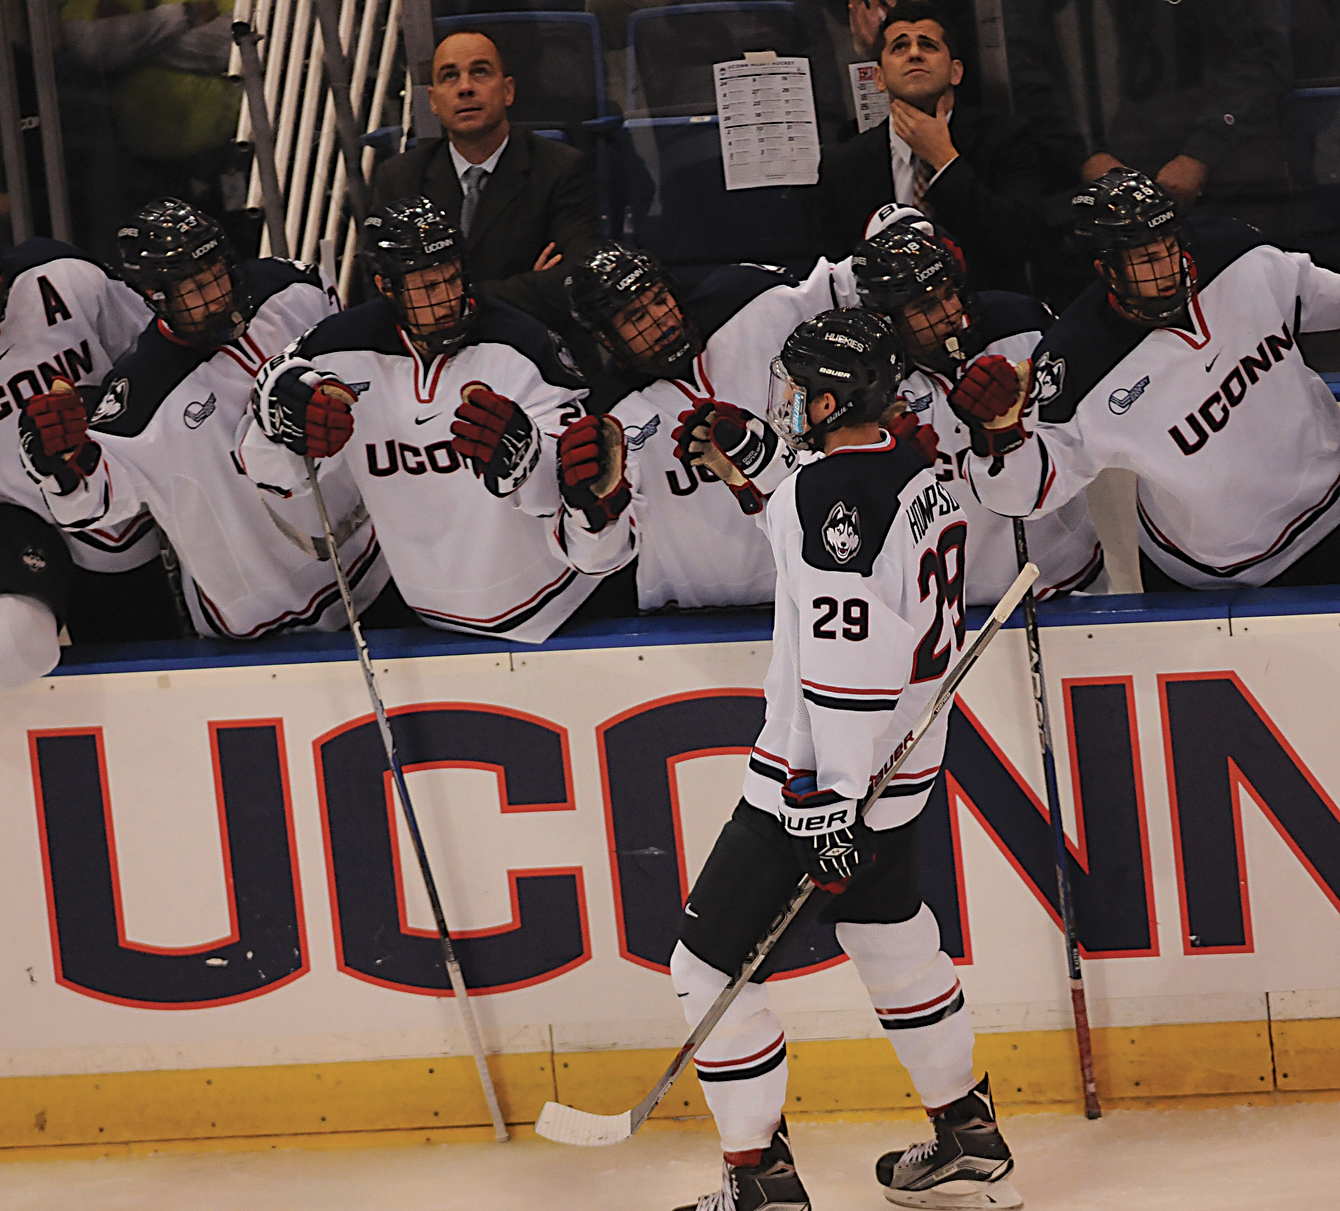 UConn men's hockey freshman forward Tage Thompson (29) skates past the Huskies' bench after scoring a goal in the team's game against Boston University at XL Center in Hartford, Connecticut on Tuesday, Oct. 27, 2015. (Amar Batra/The Daily Campus)